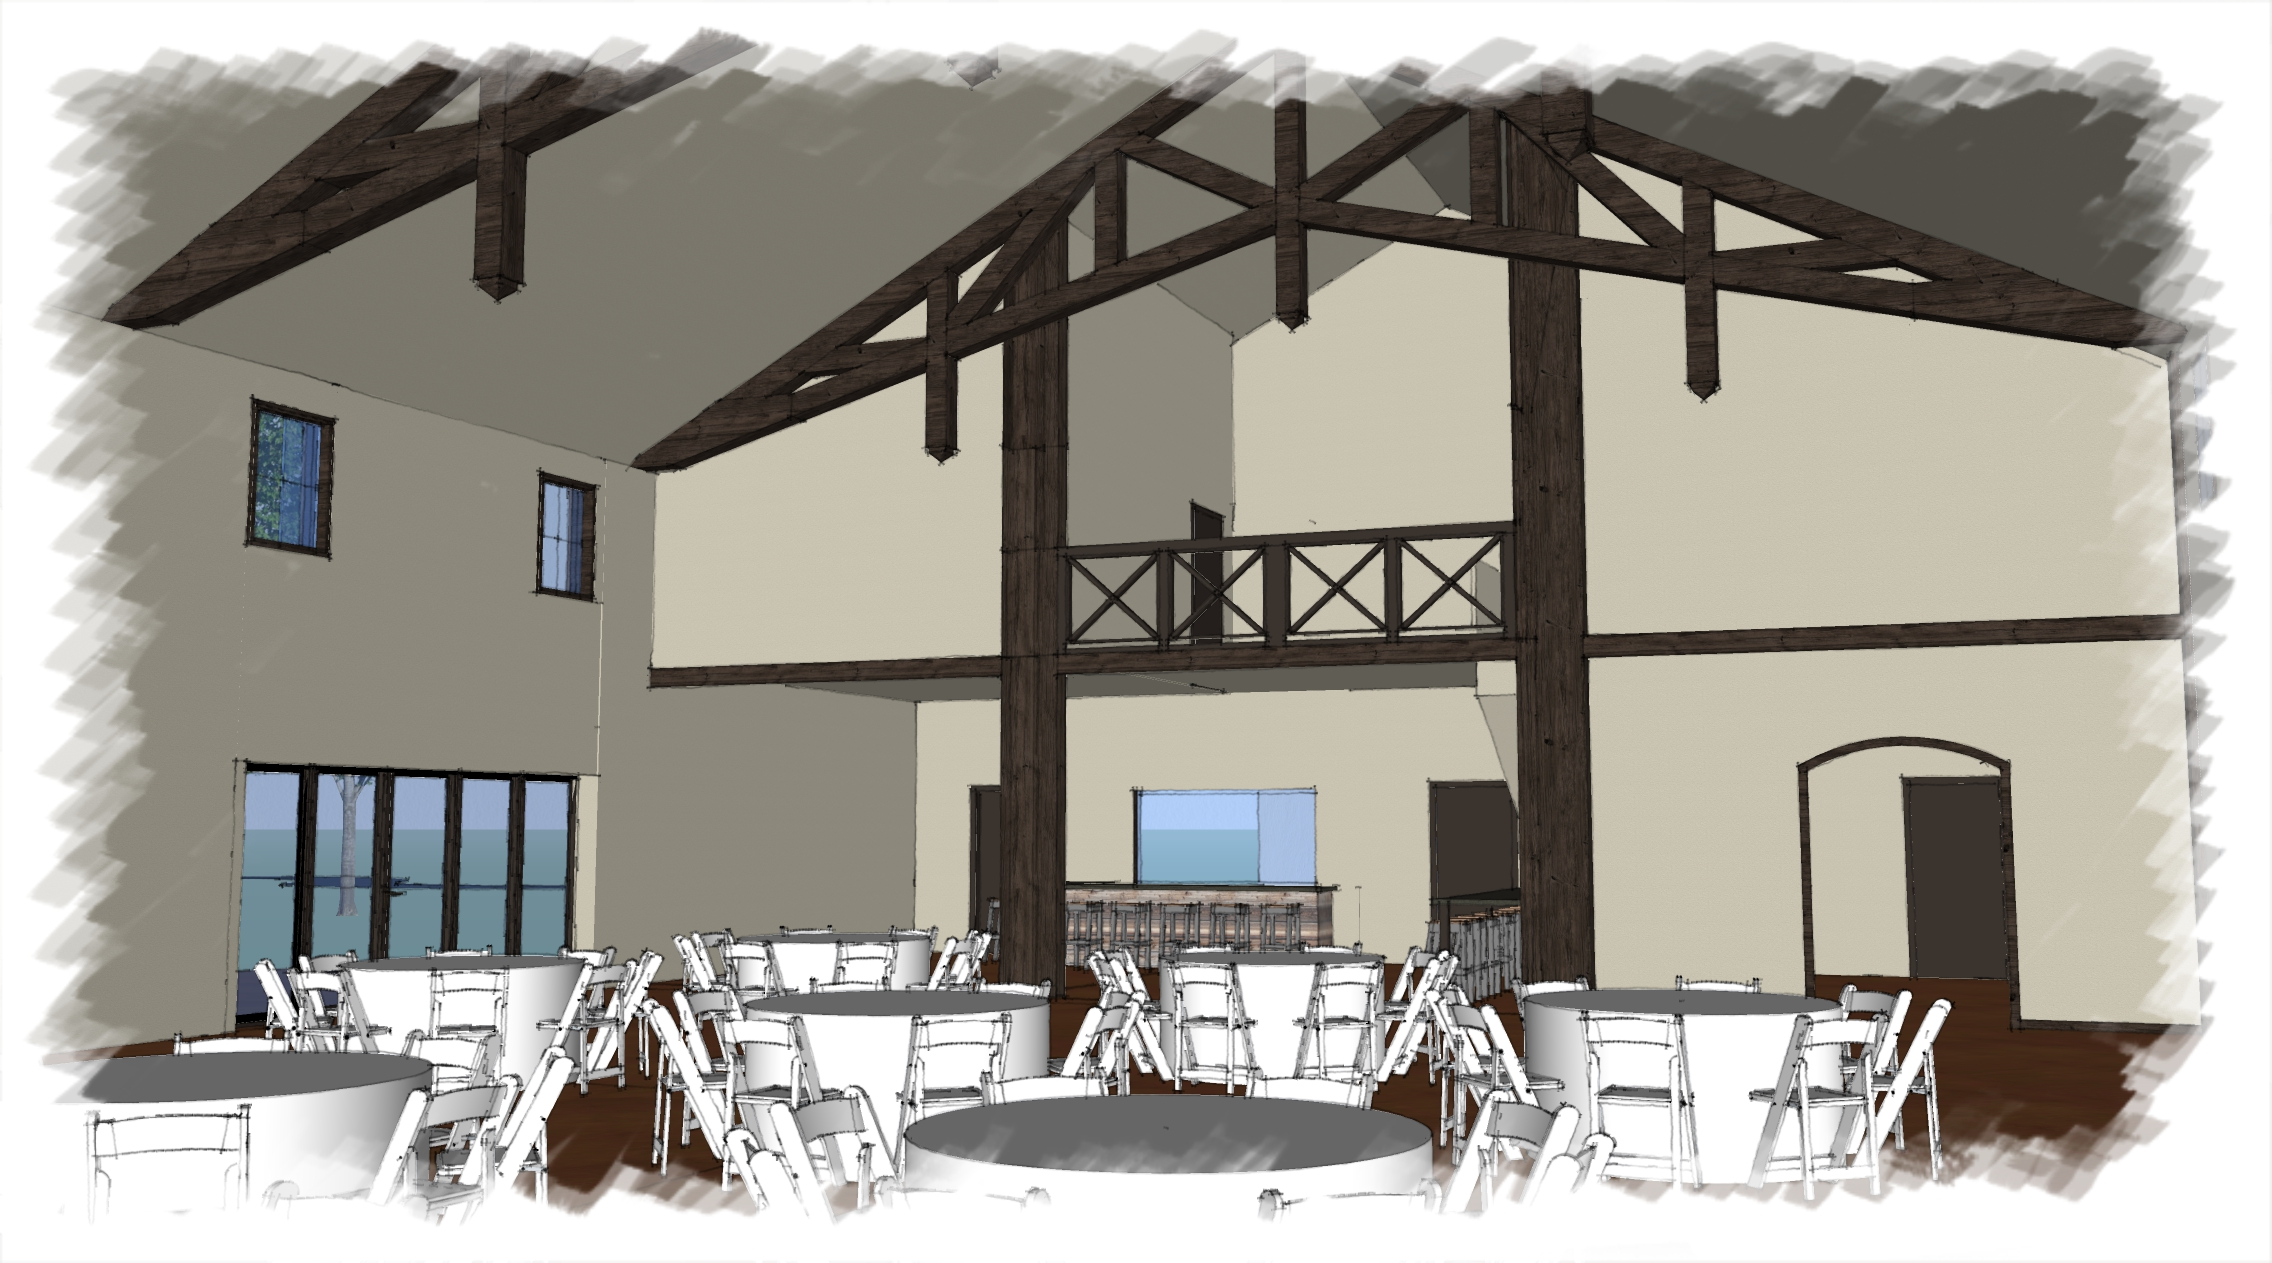 180906_INTERIOR VIEW SKETCHUP.jpg